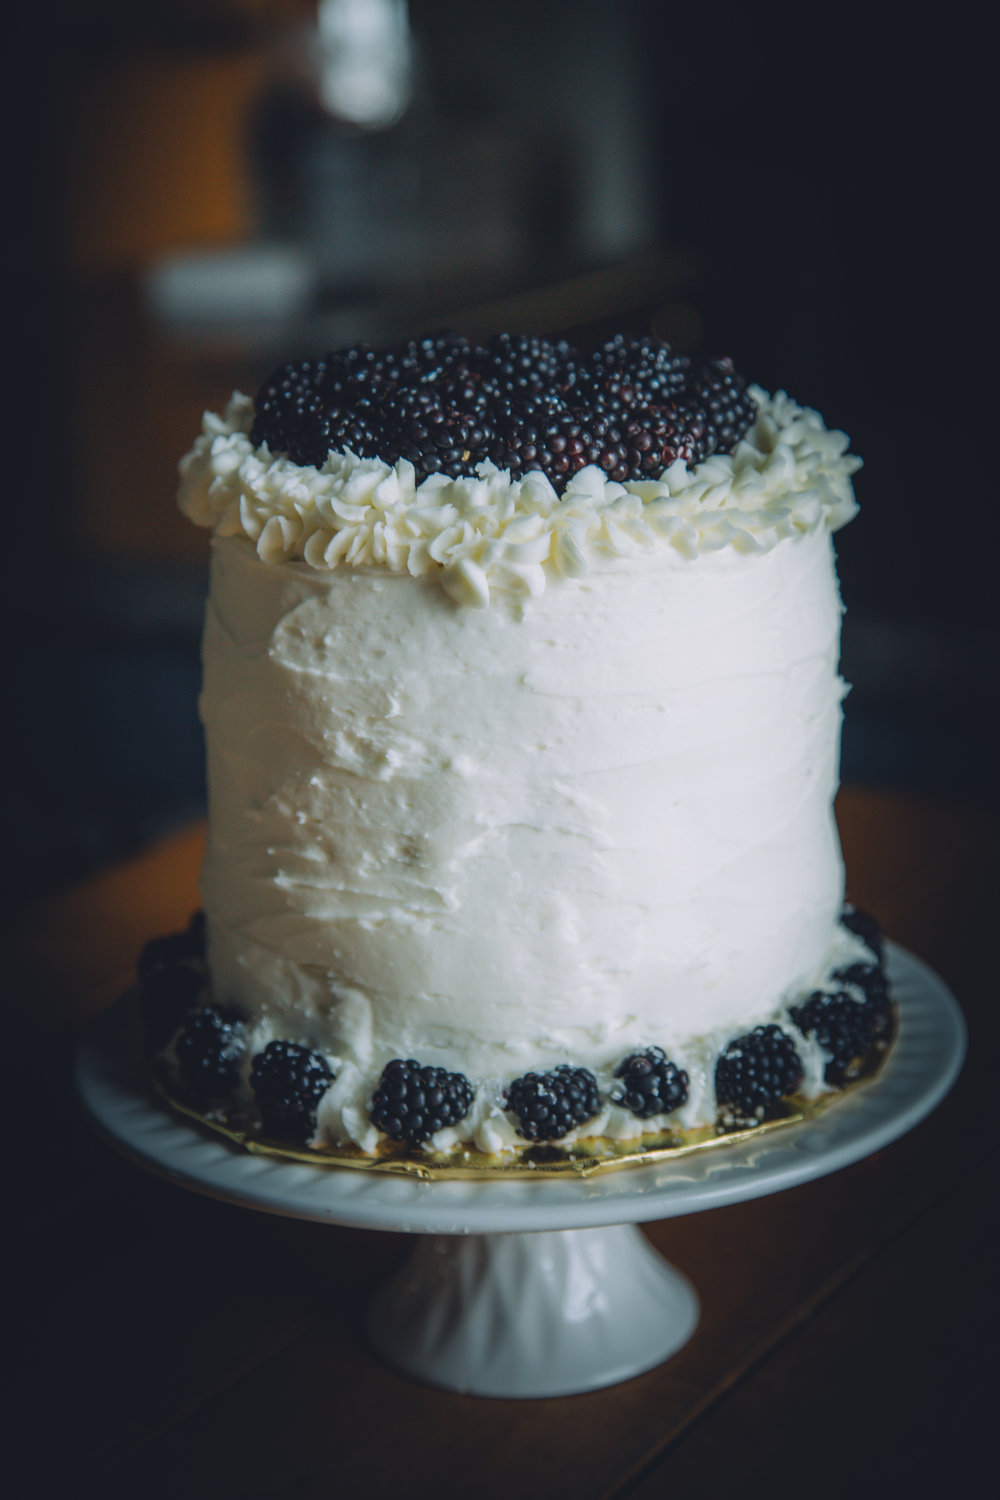 Blackberry Sour Cream Cake with Almond Frosting